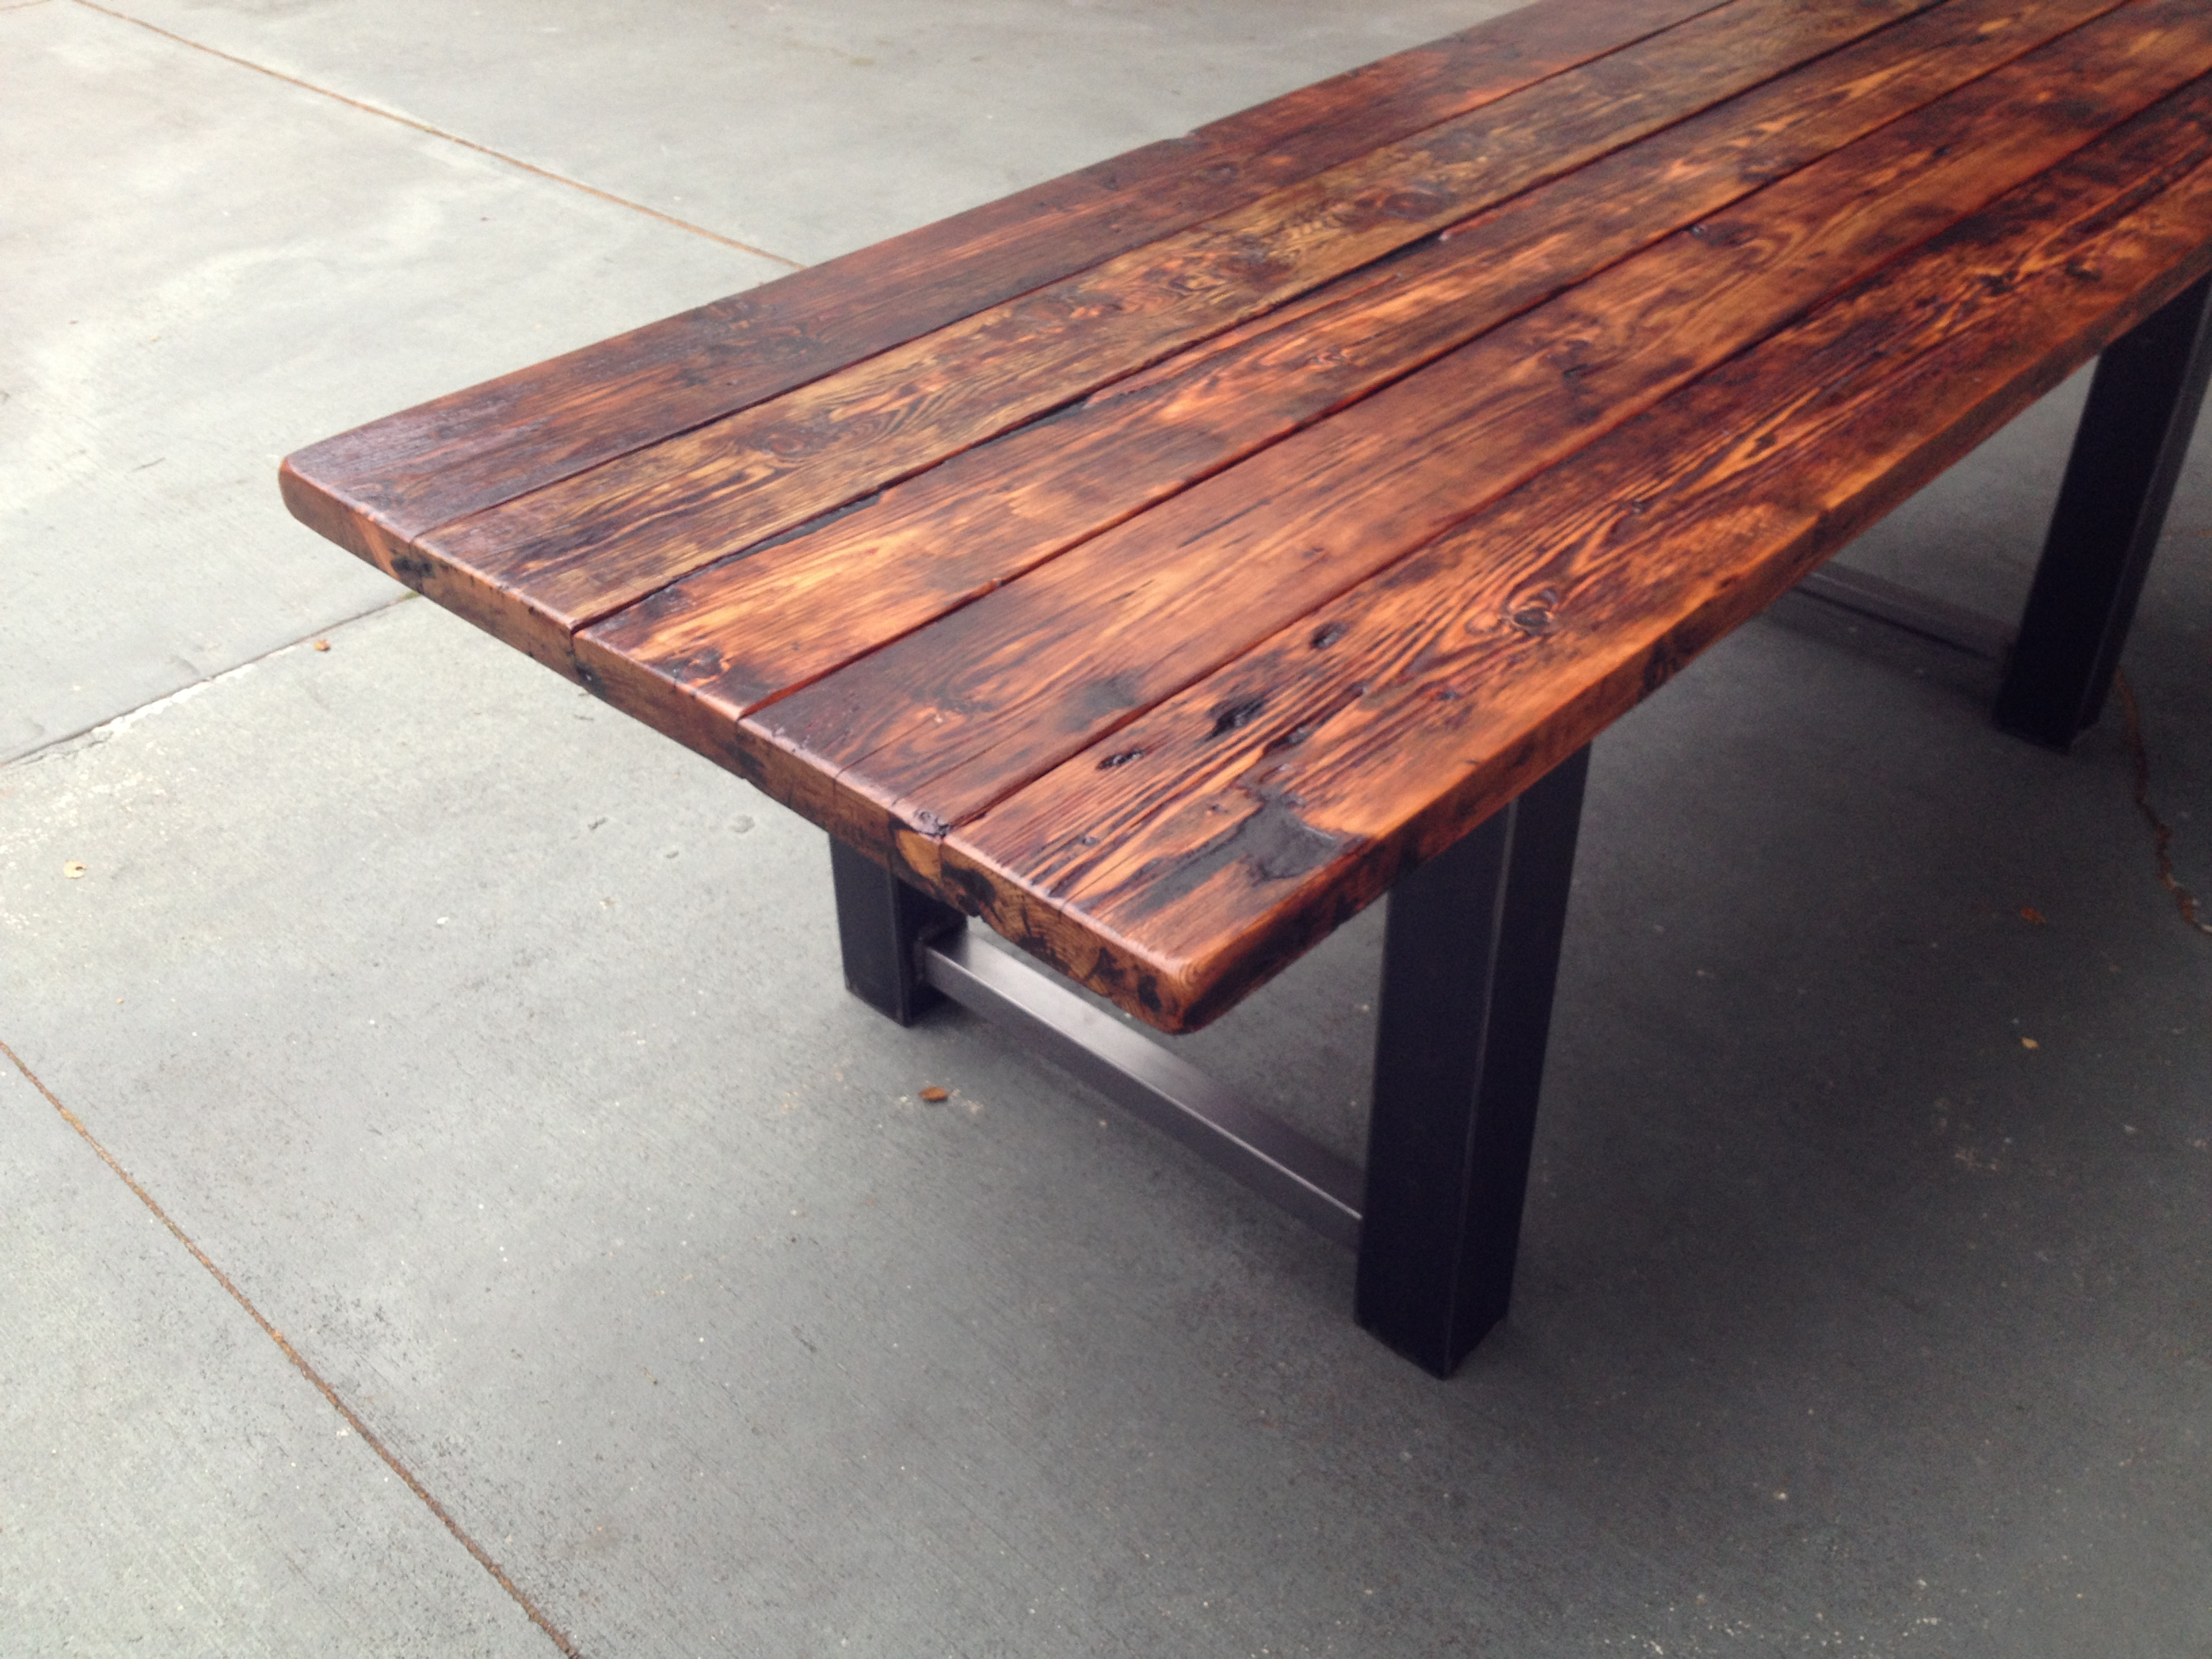 This Dining Table Was Handcrafted Out Of Reclaimed Wood And Raw Steel